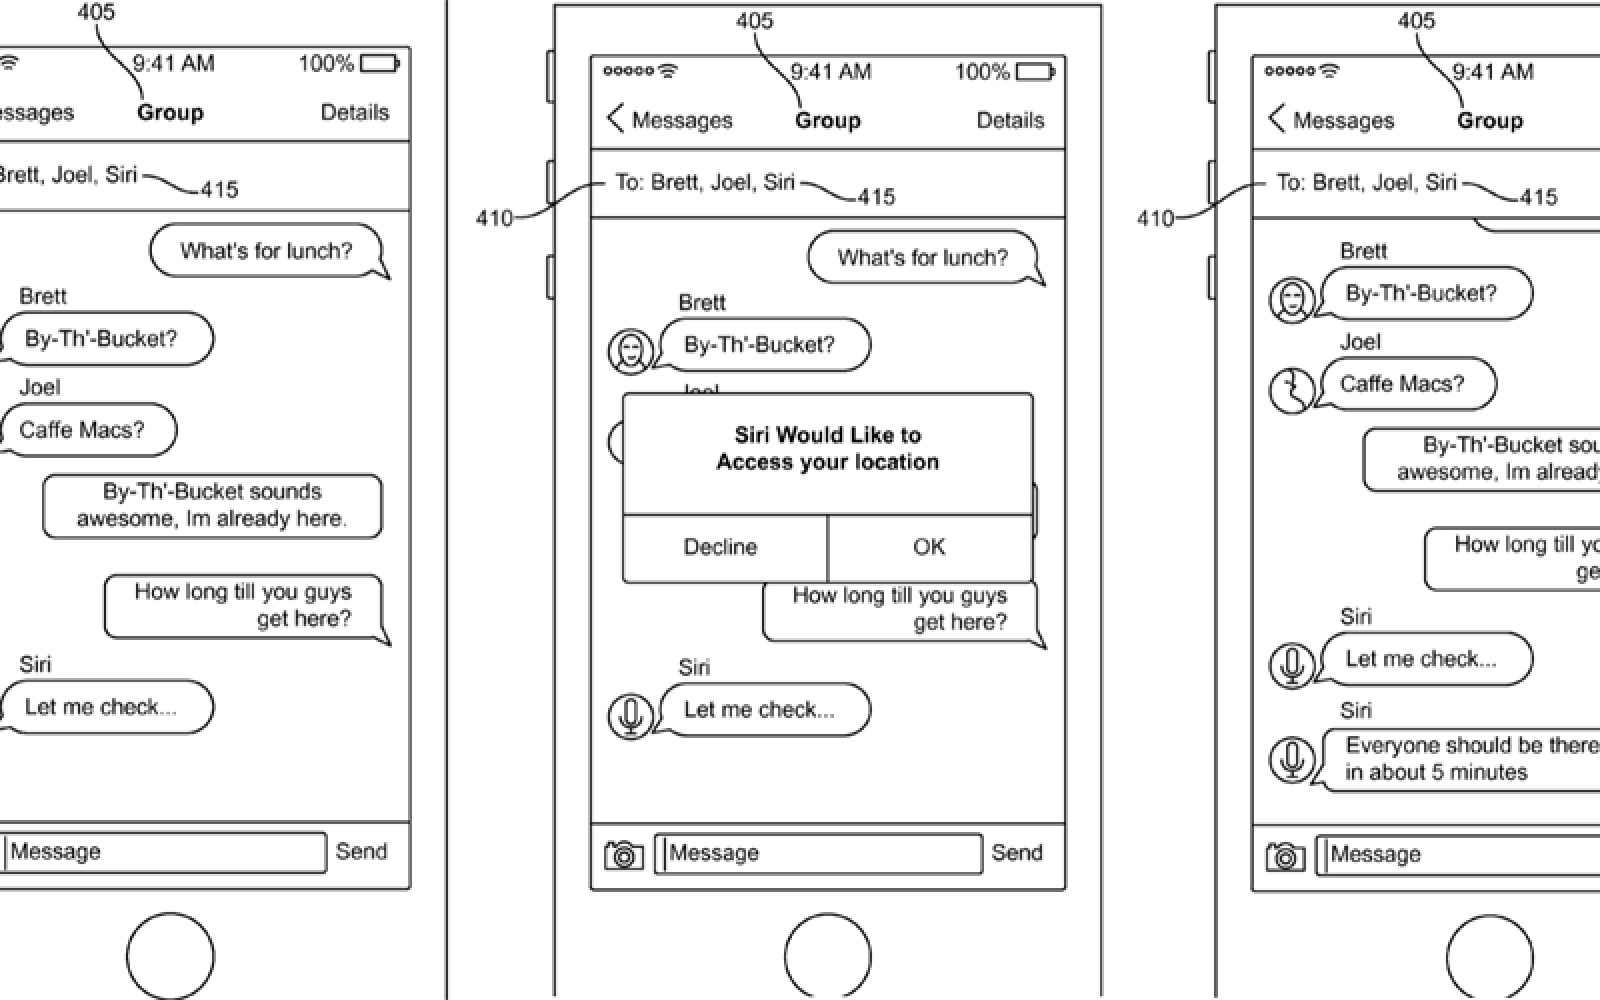 Apple patent shows Siri interjecting in iMessage chats, scheduling dinner & more